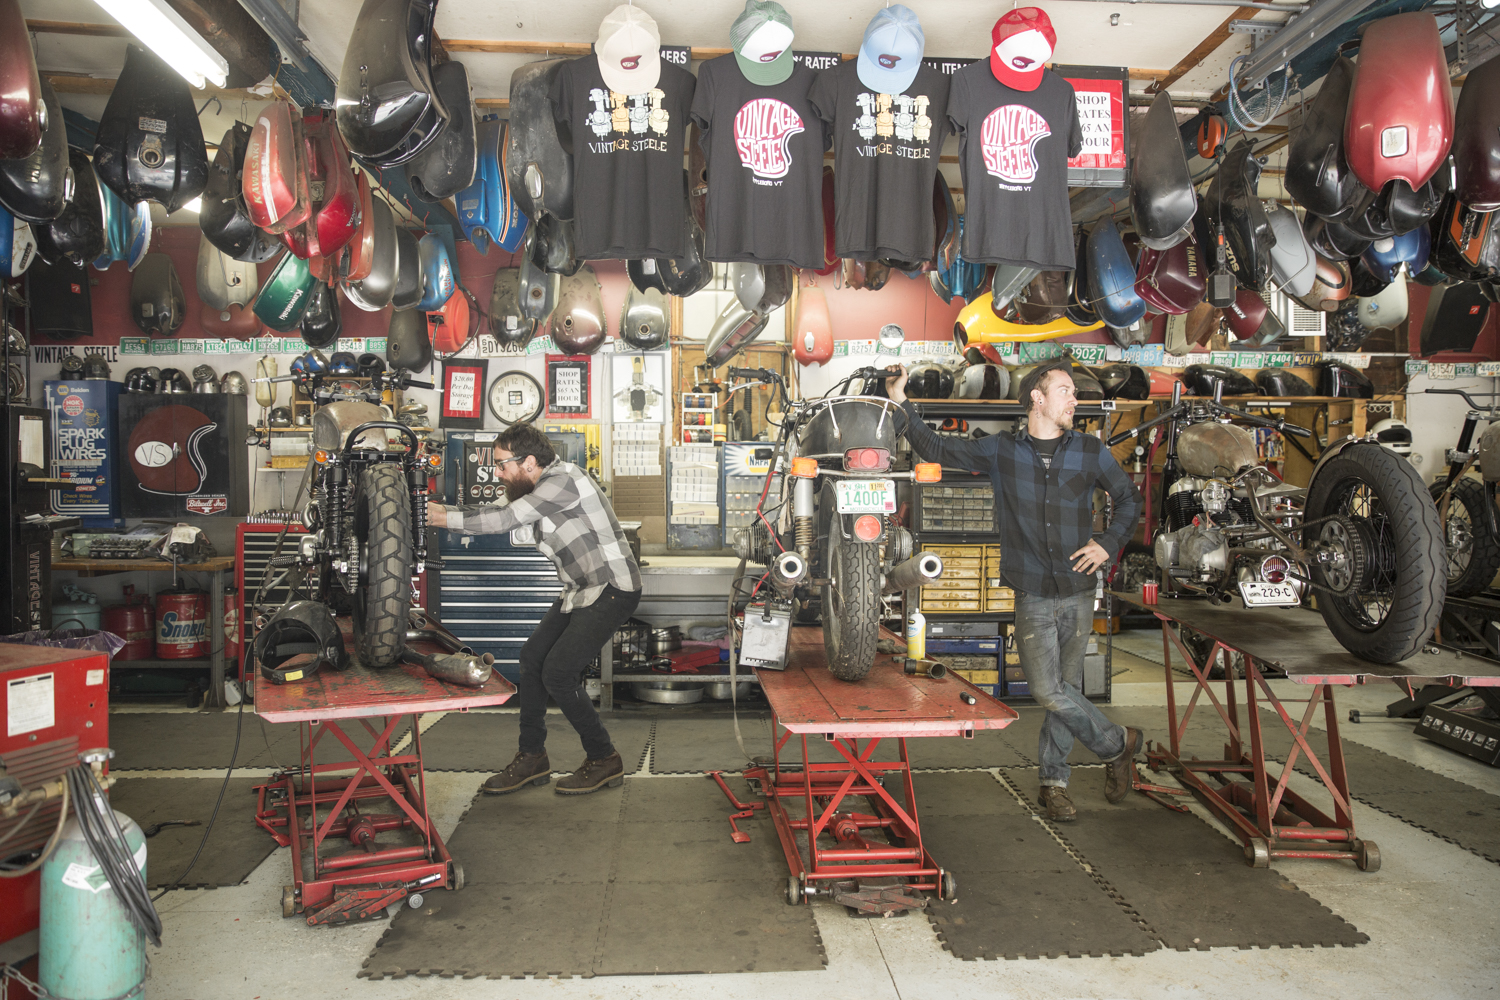 Josh and Chris at the Vintage Steele shop in Brattleboro, Vermont